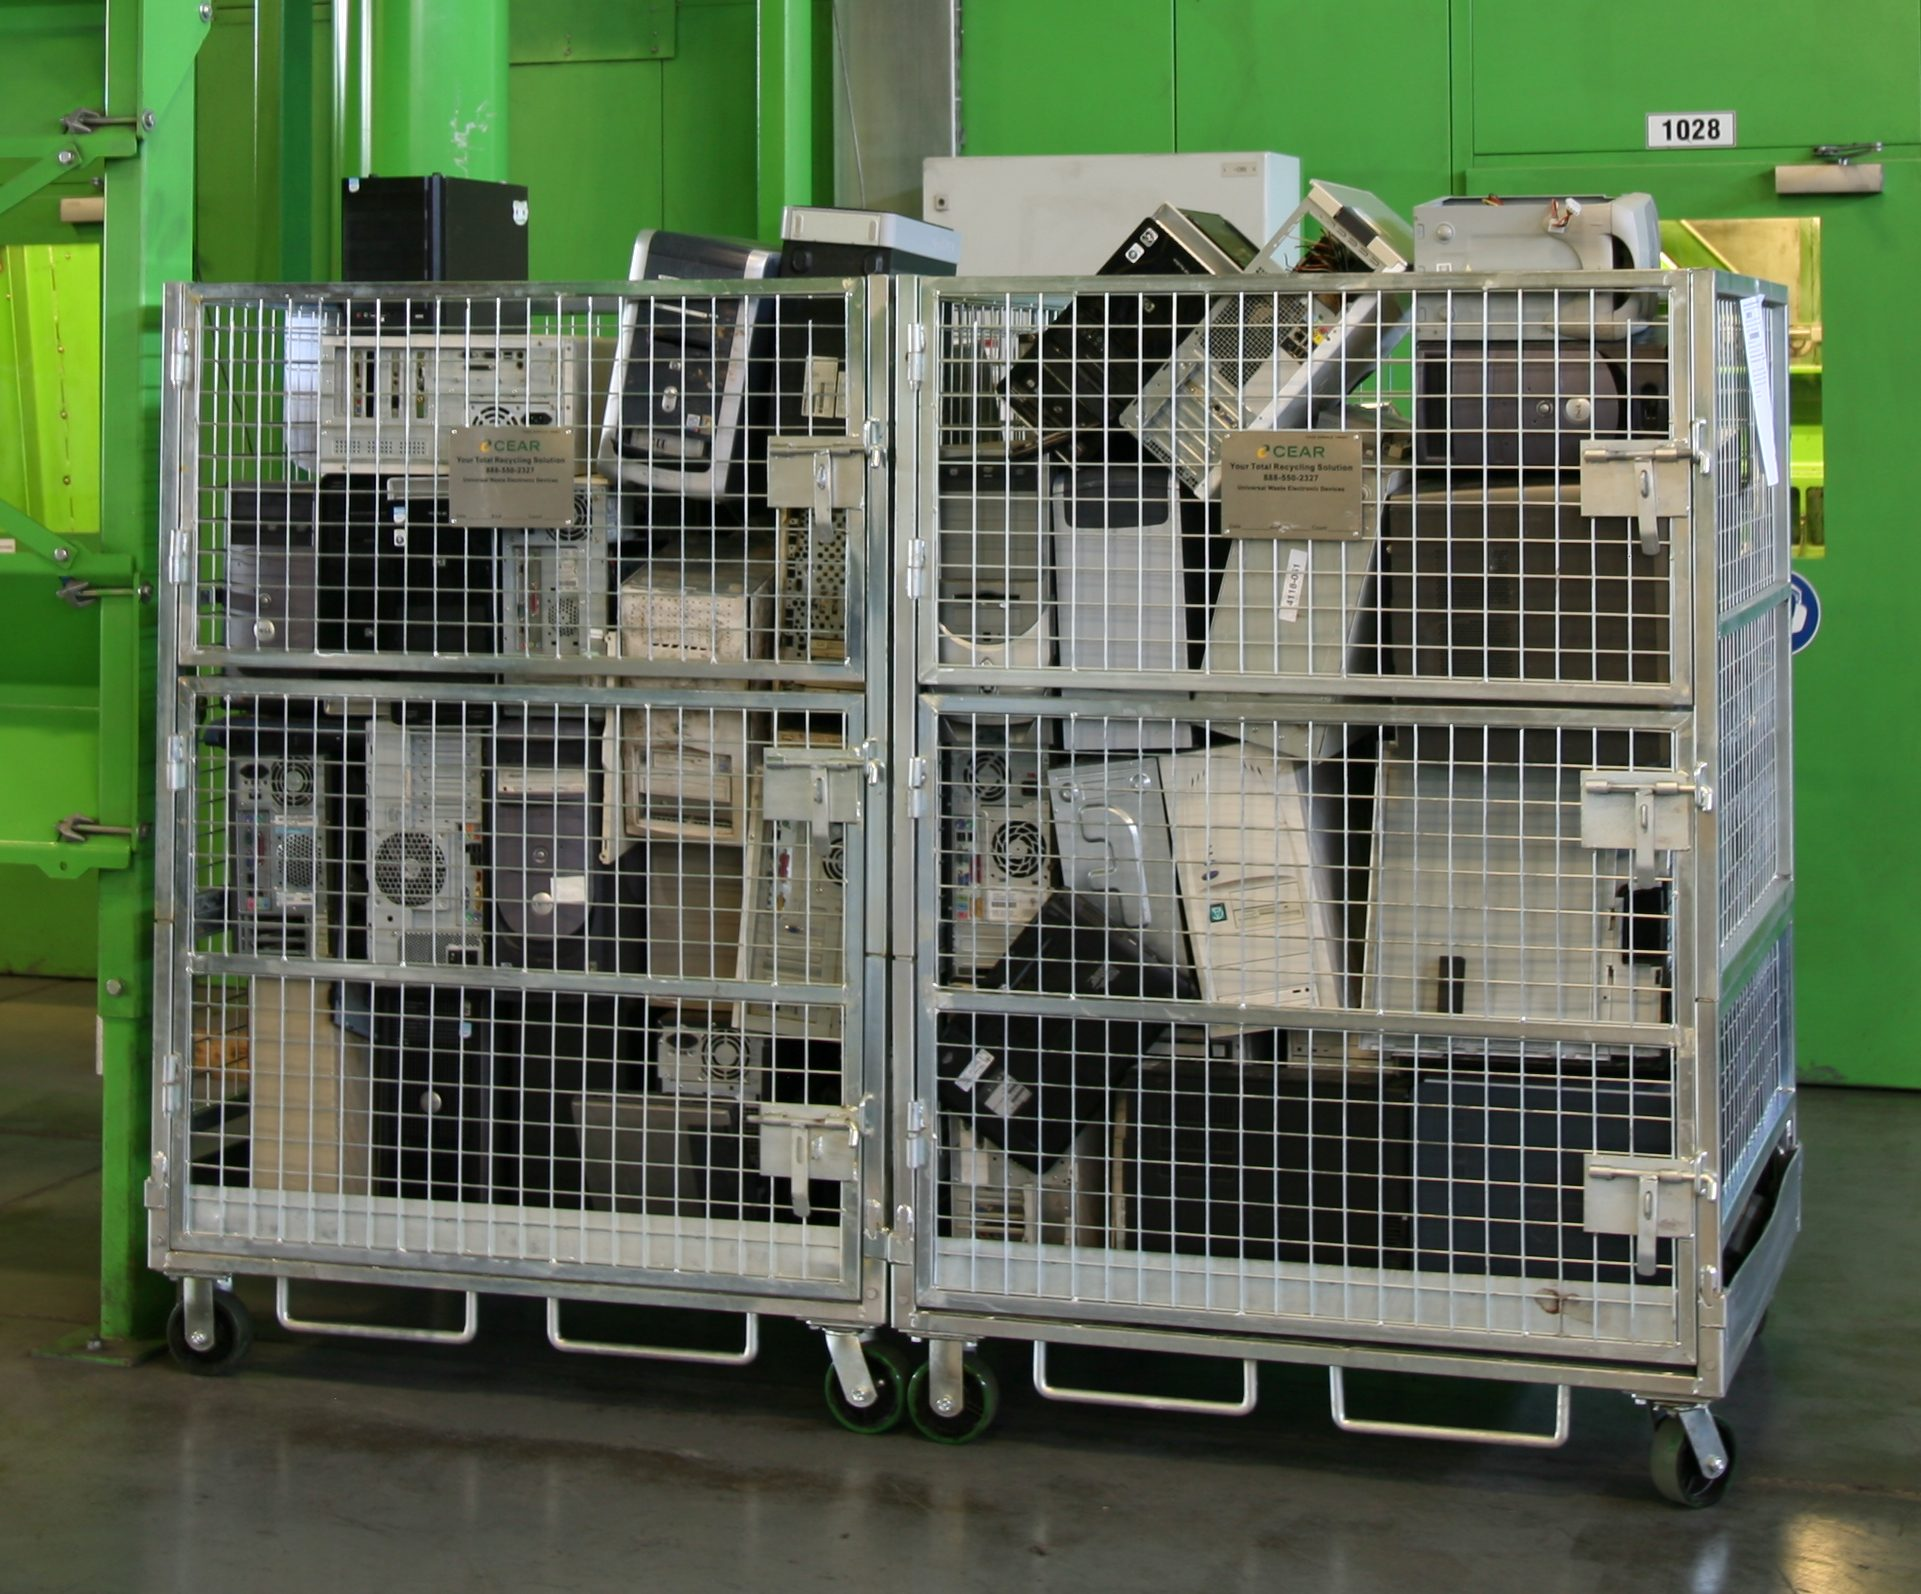 Our e-cage asset collection system is a collapsible stainless-steel pallet sized cage including bar code tracking and locks. This reusable system reduces the need for shrink wrap and wooden pallets and provides our customer's with a full chain of custody control.